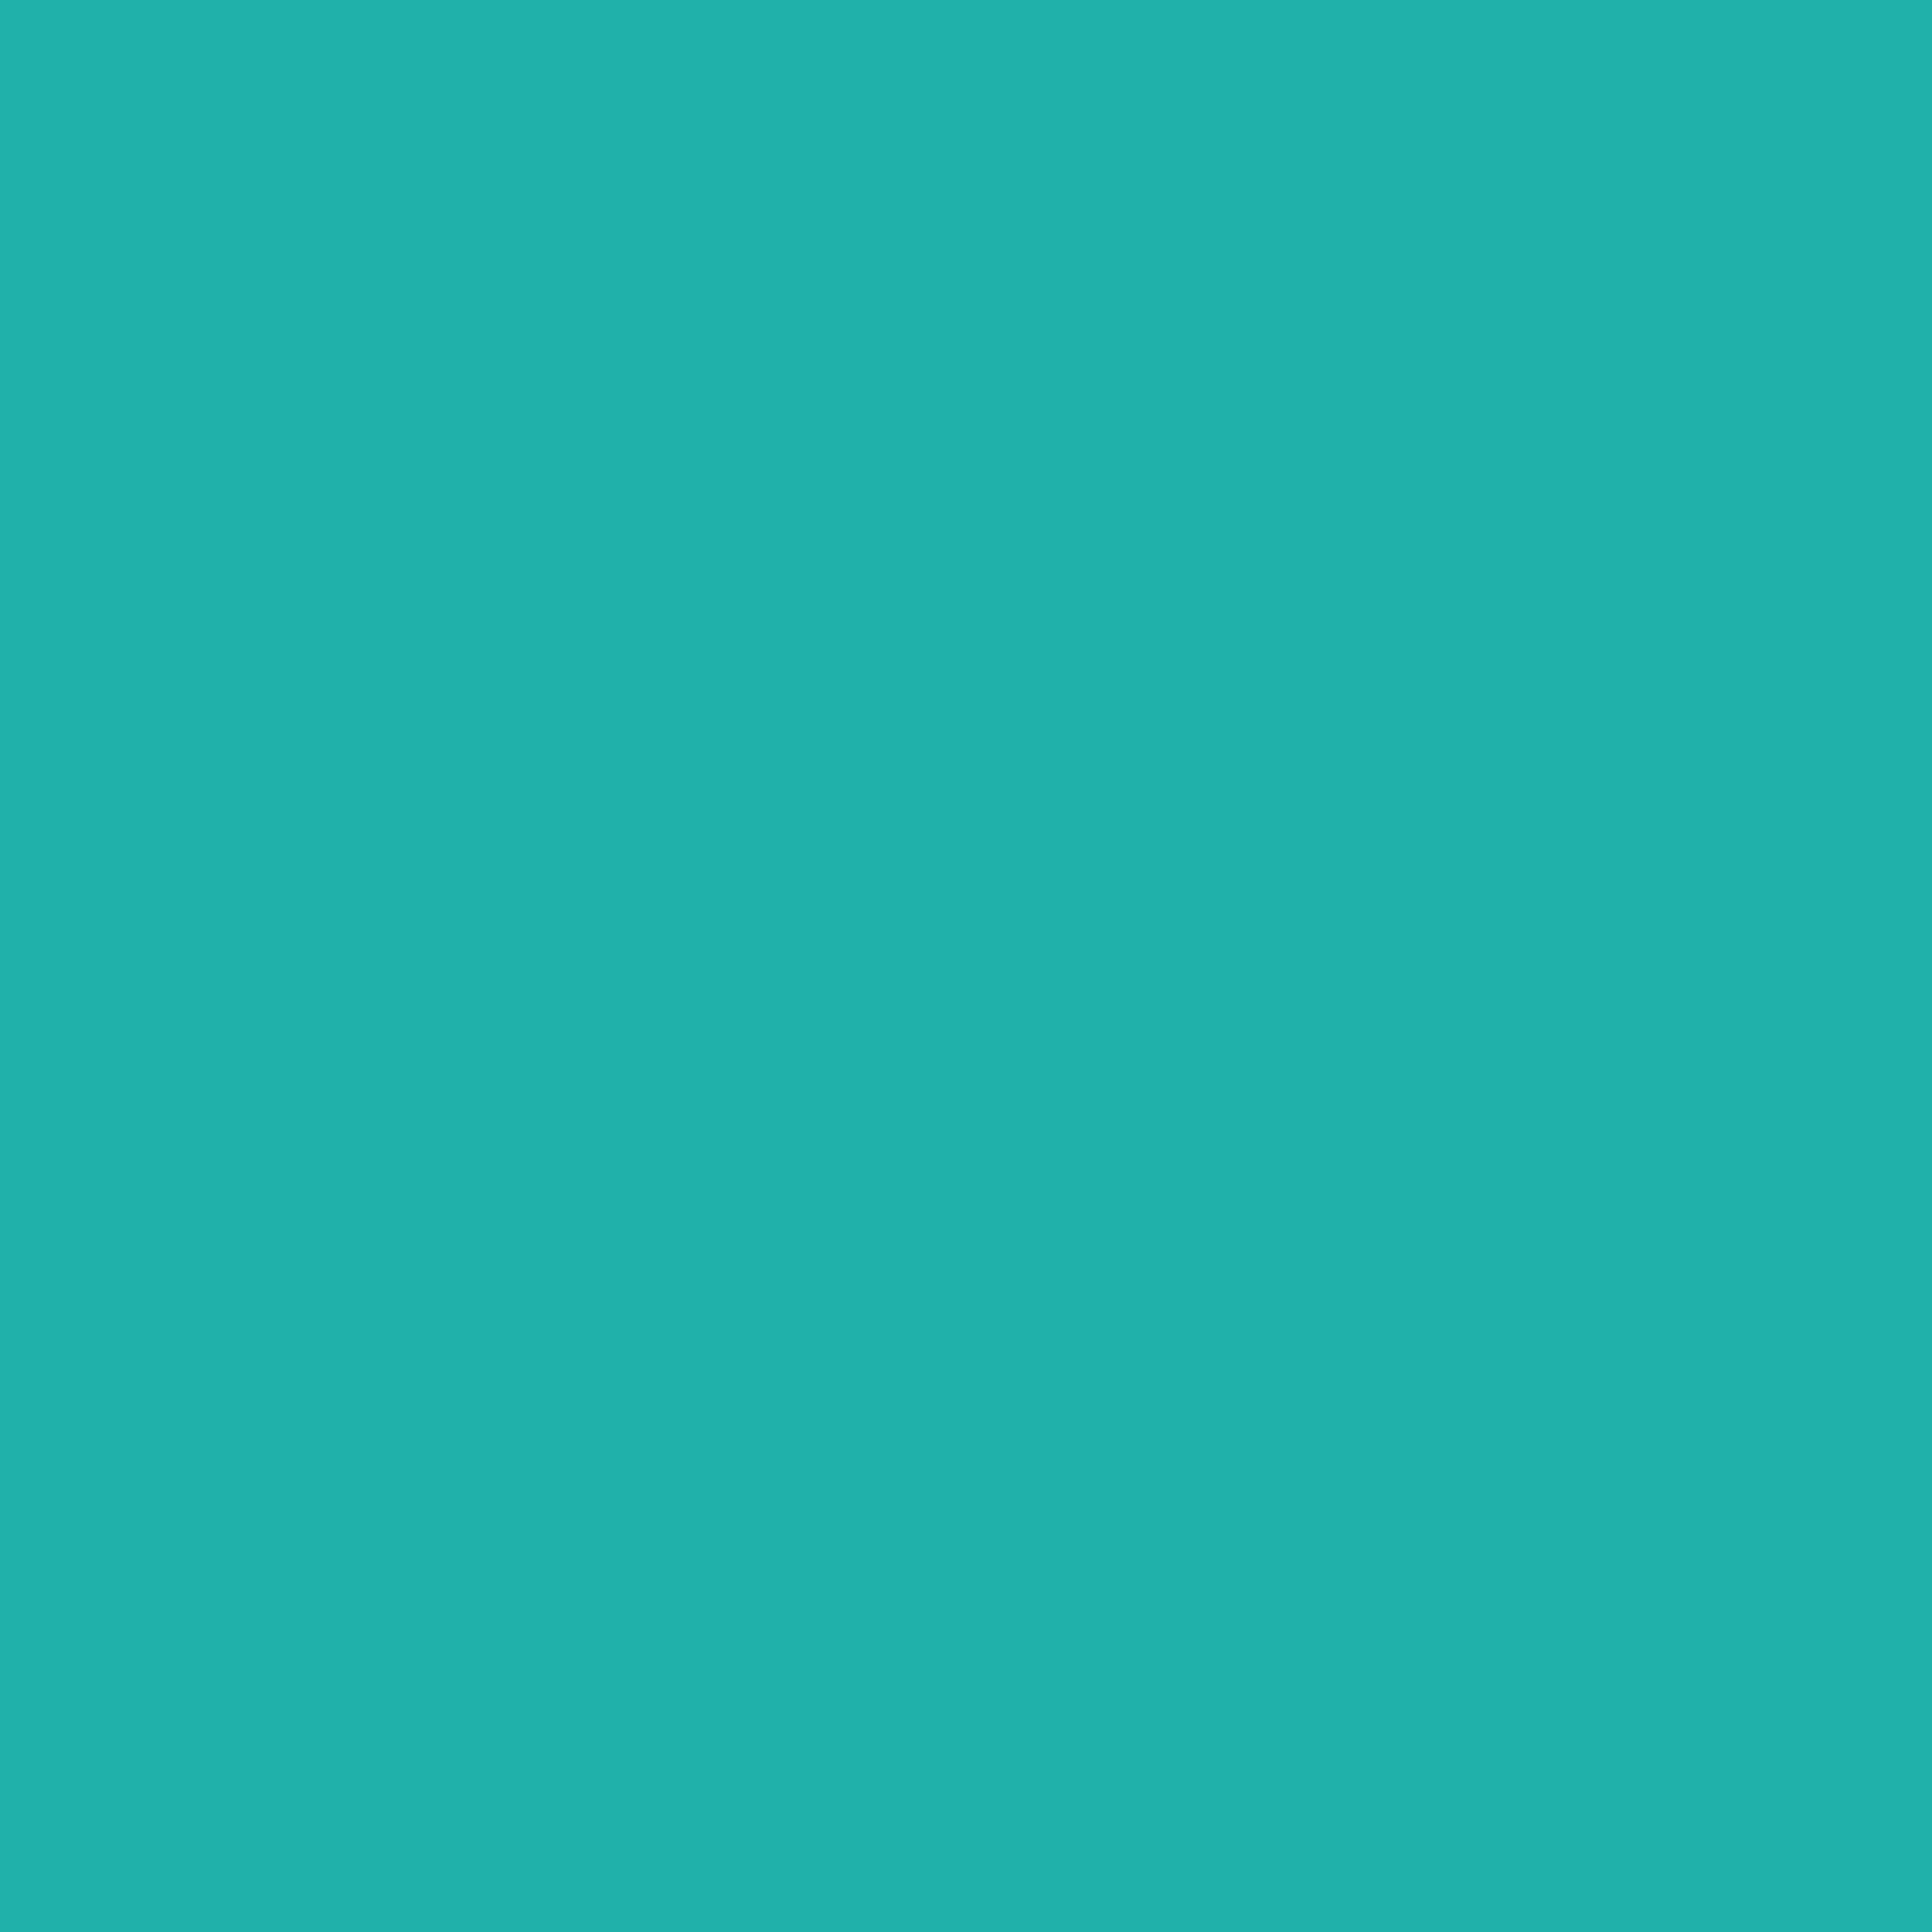 2048x2048 Light Sea Green Solid Color Background